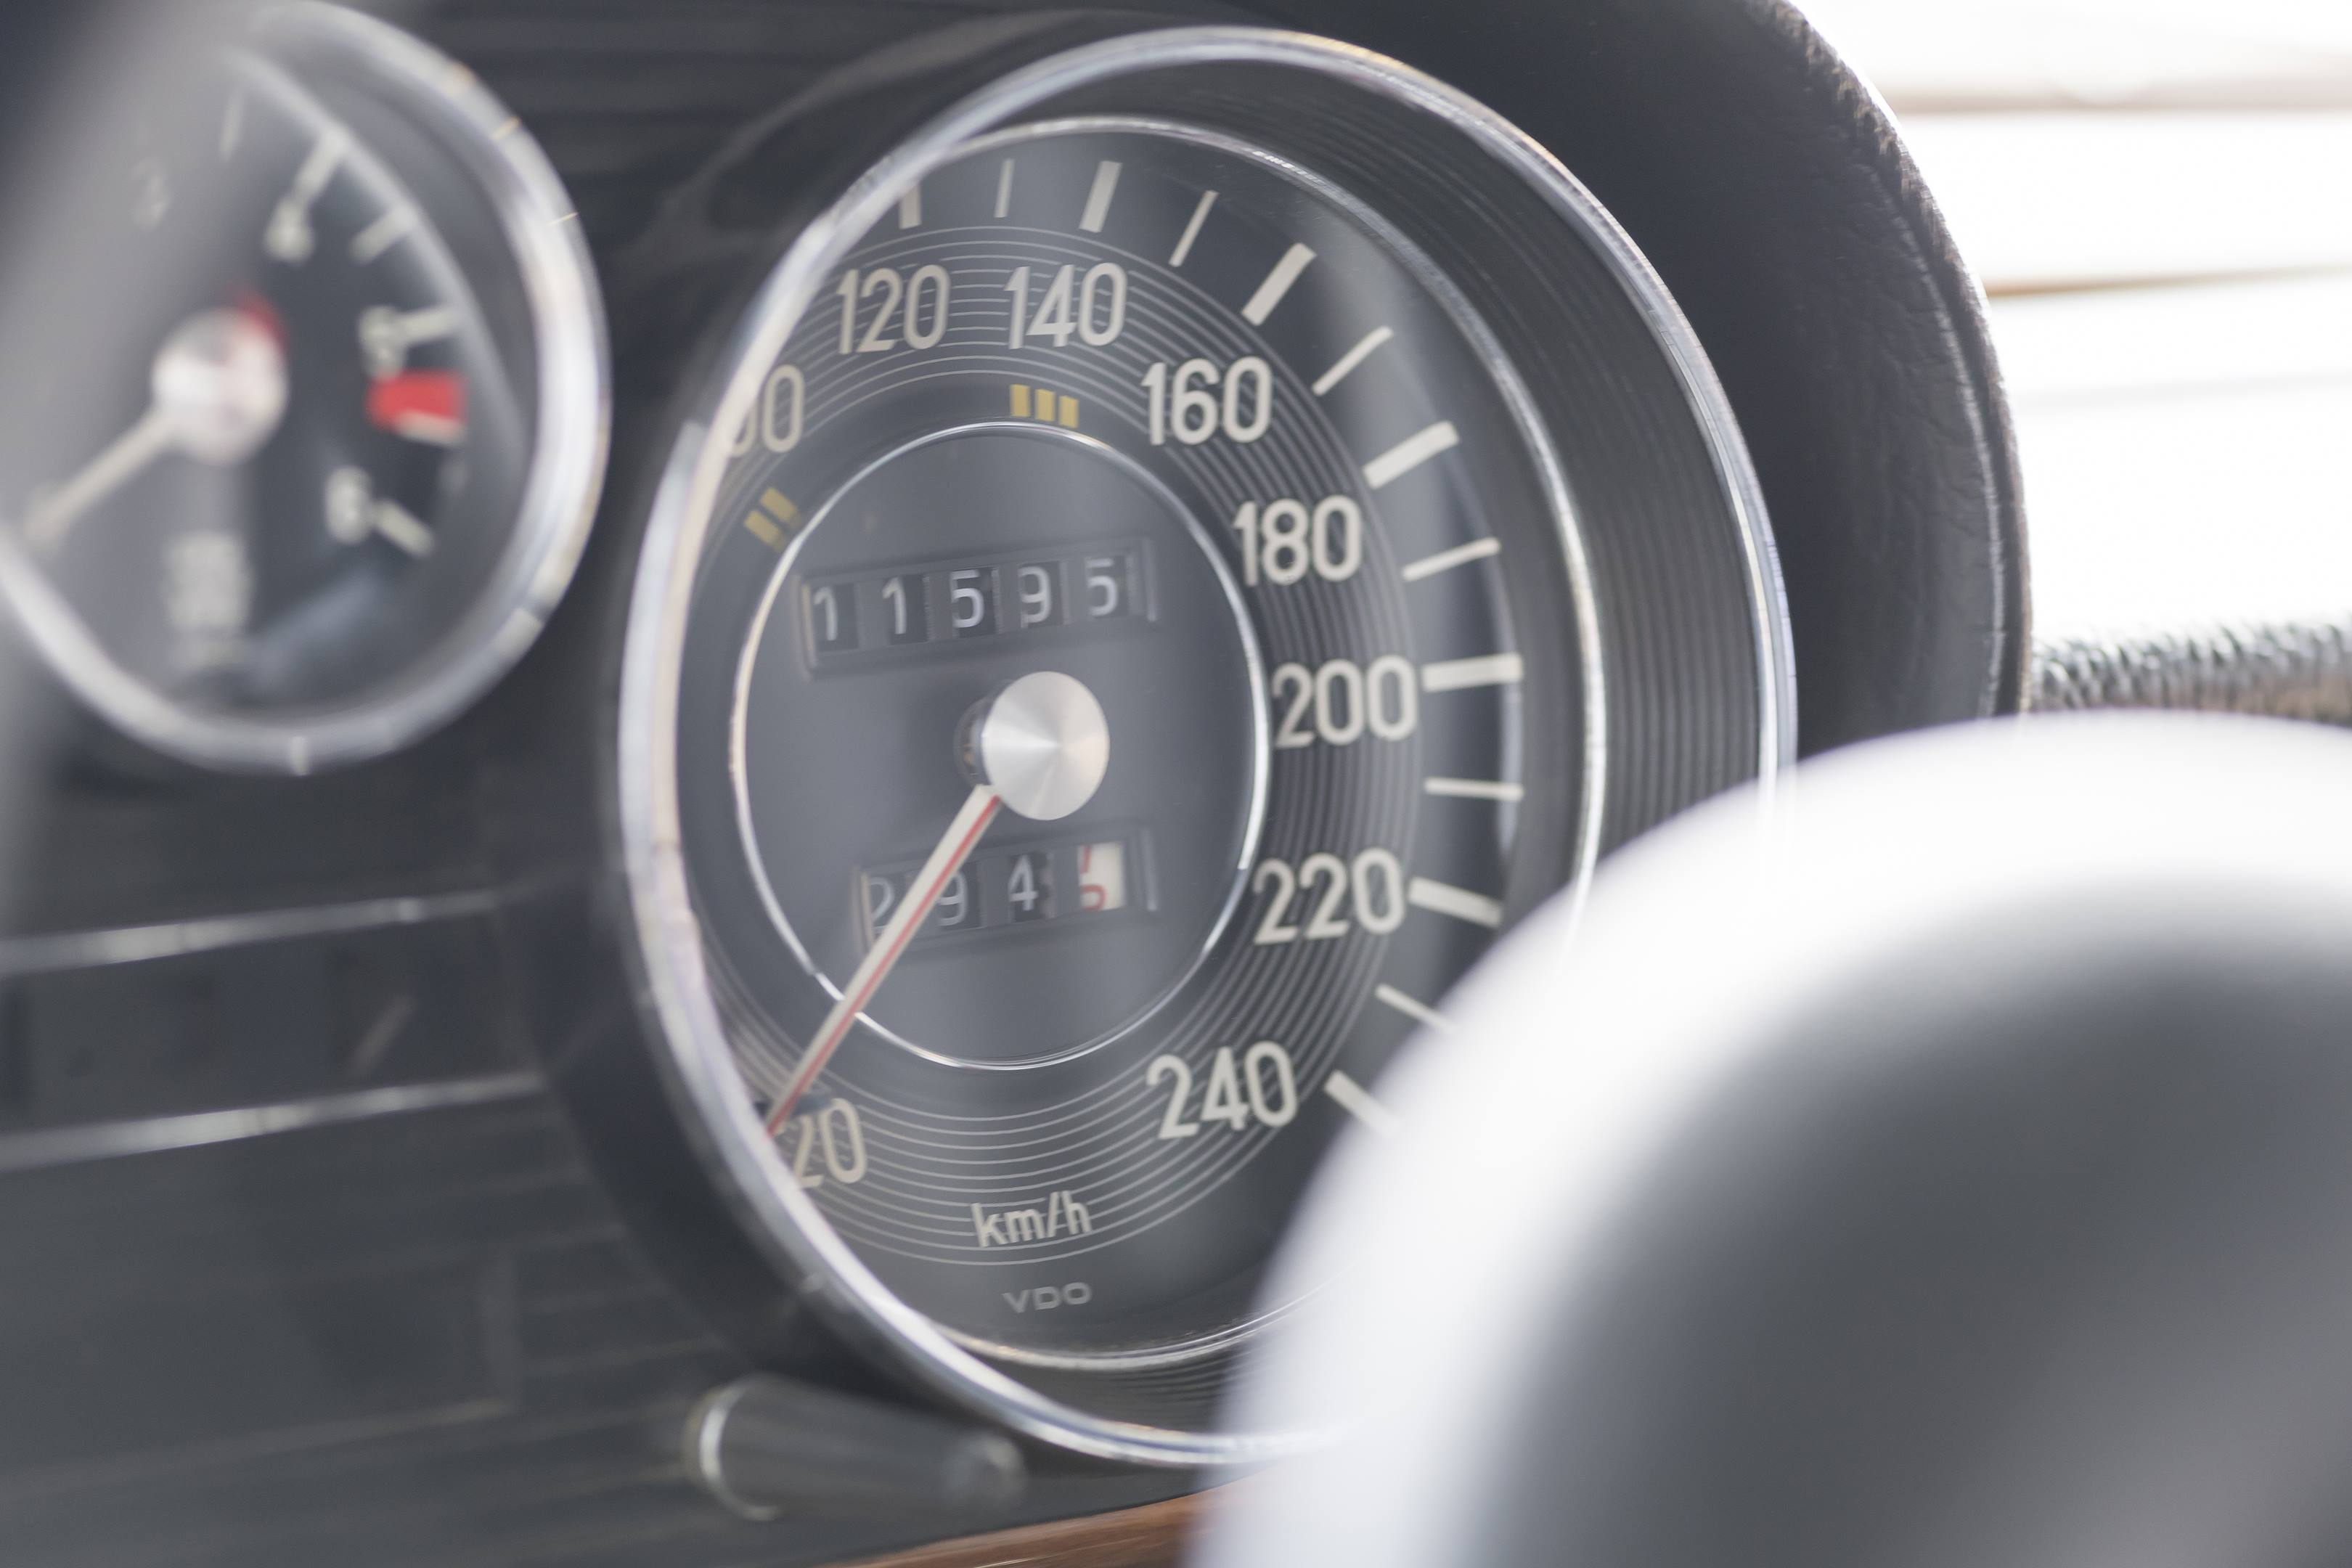 mercedes benz amg 300SEL 6.3 red pig replica speedometer